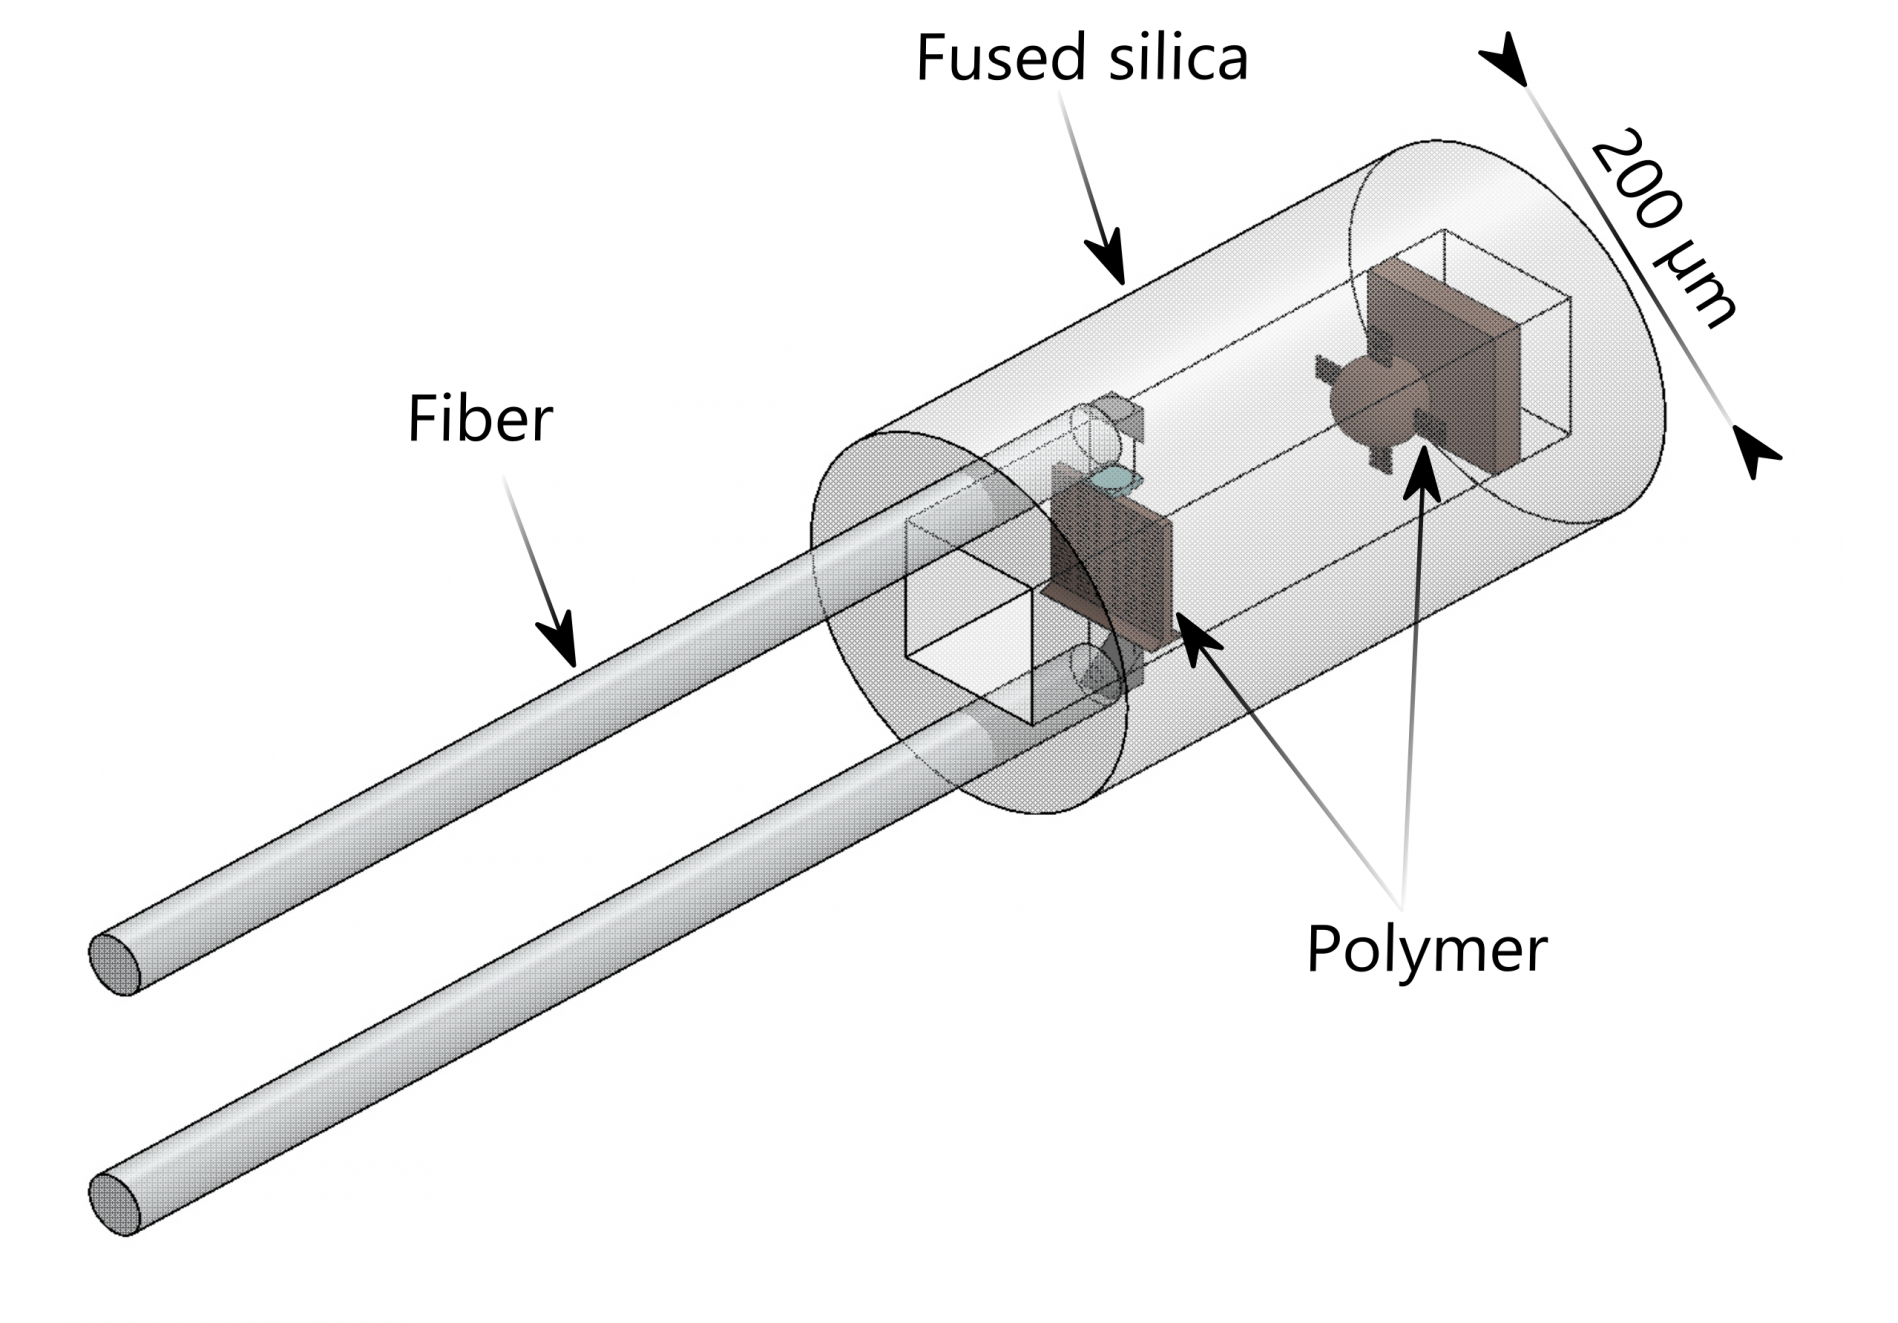 MICRO DEVICE FOR PRECISE DRUG FLOW CONTROL